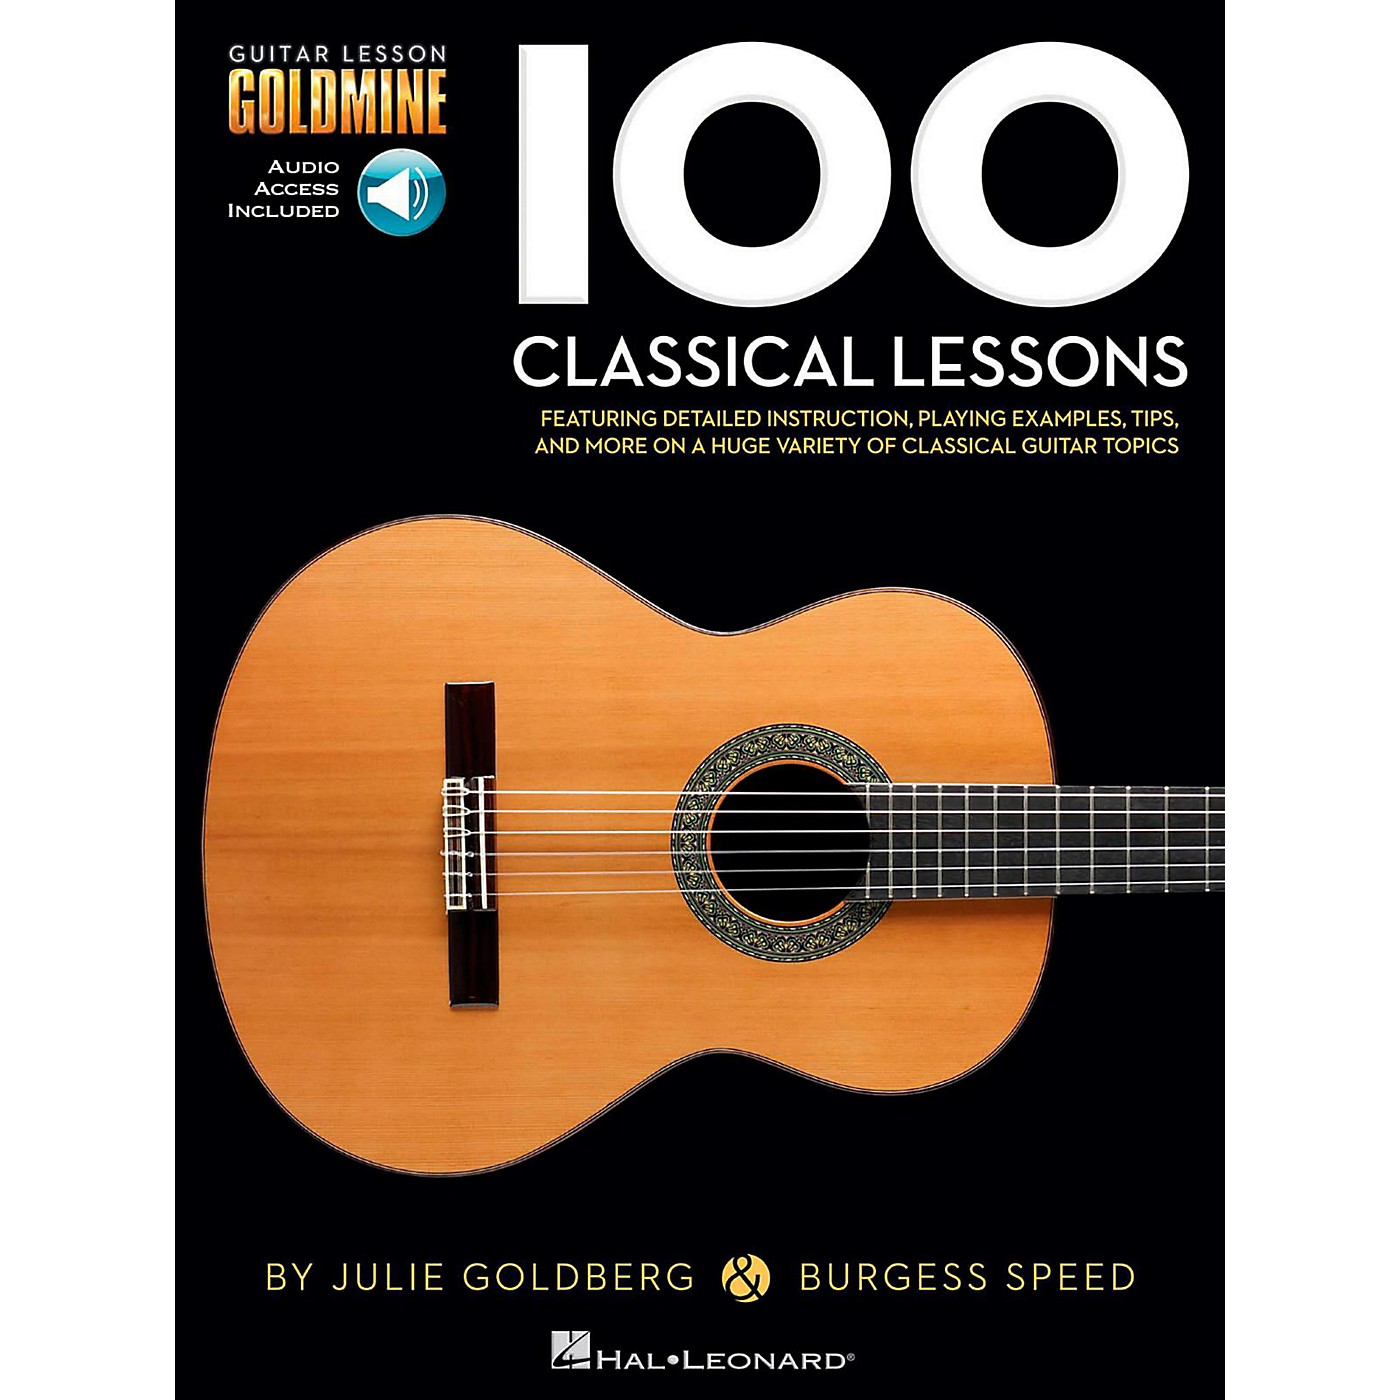 Hal Leonard 100 Classical Lessons - Guitar Lesson Goldmine Series Book/Audio Online thumbnail